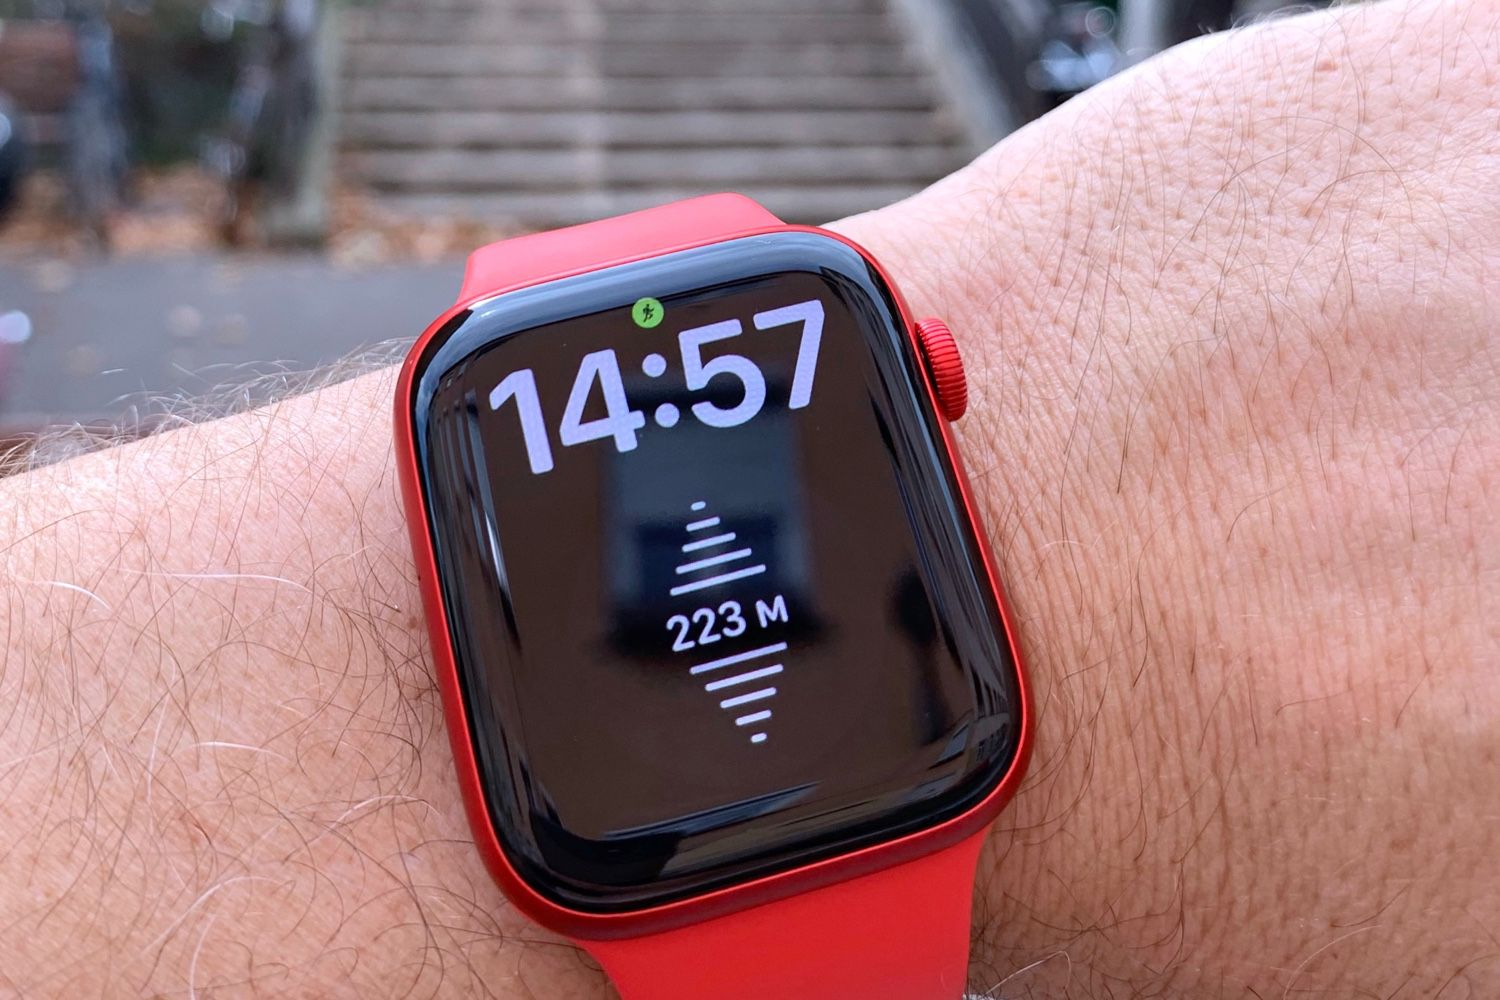 👑 Test de l'Apple Watch Series 6